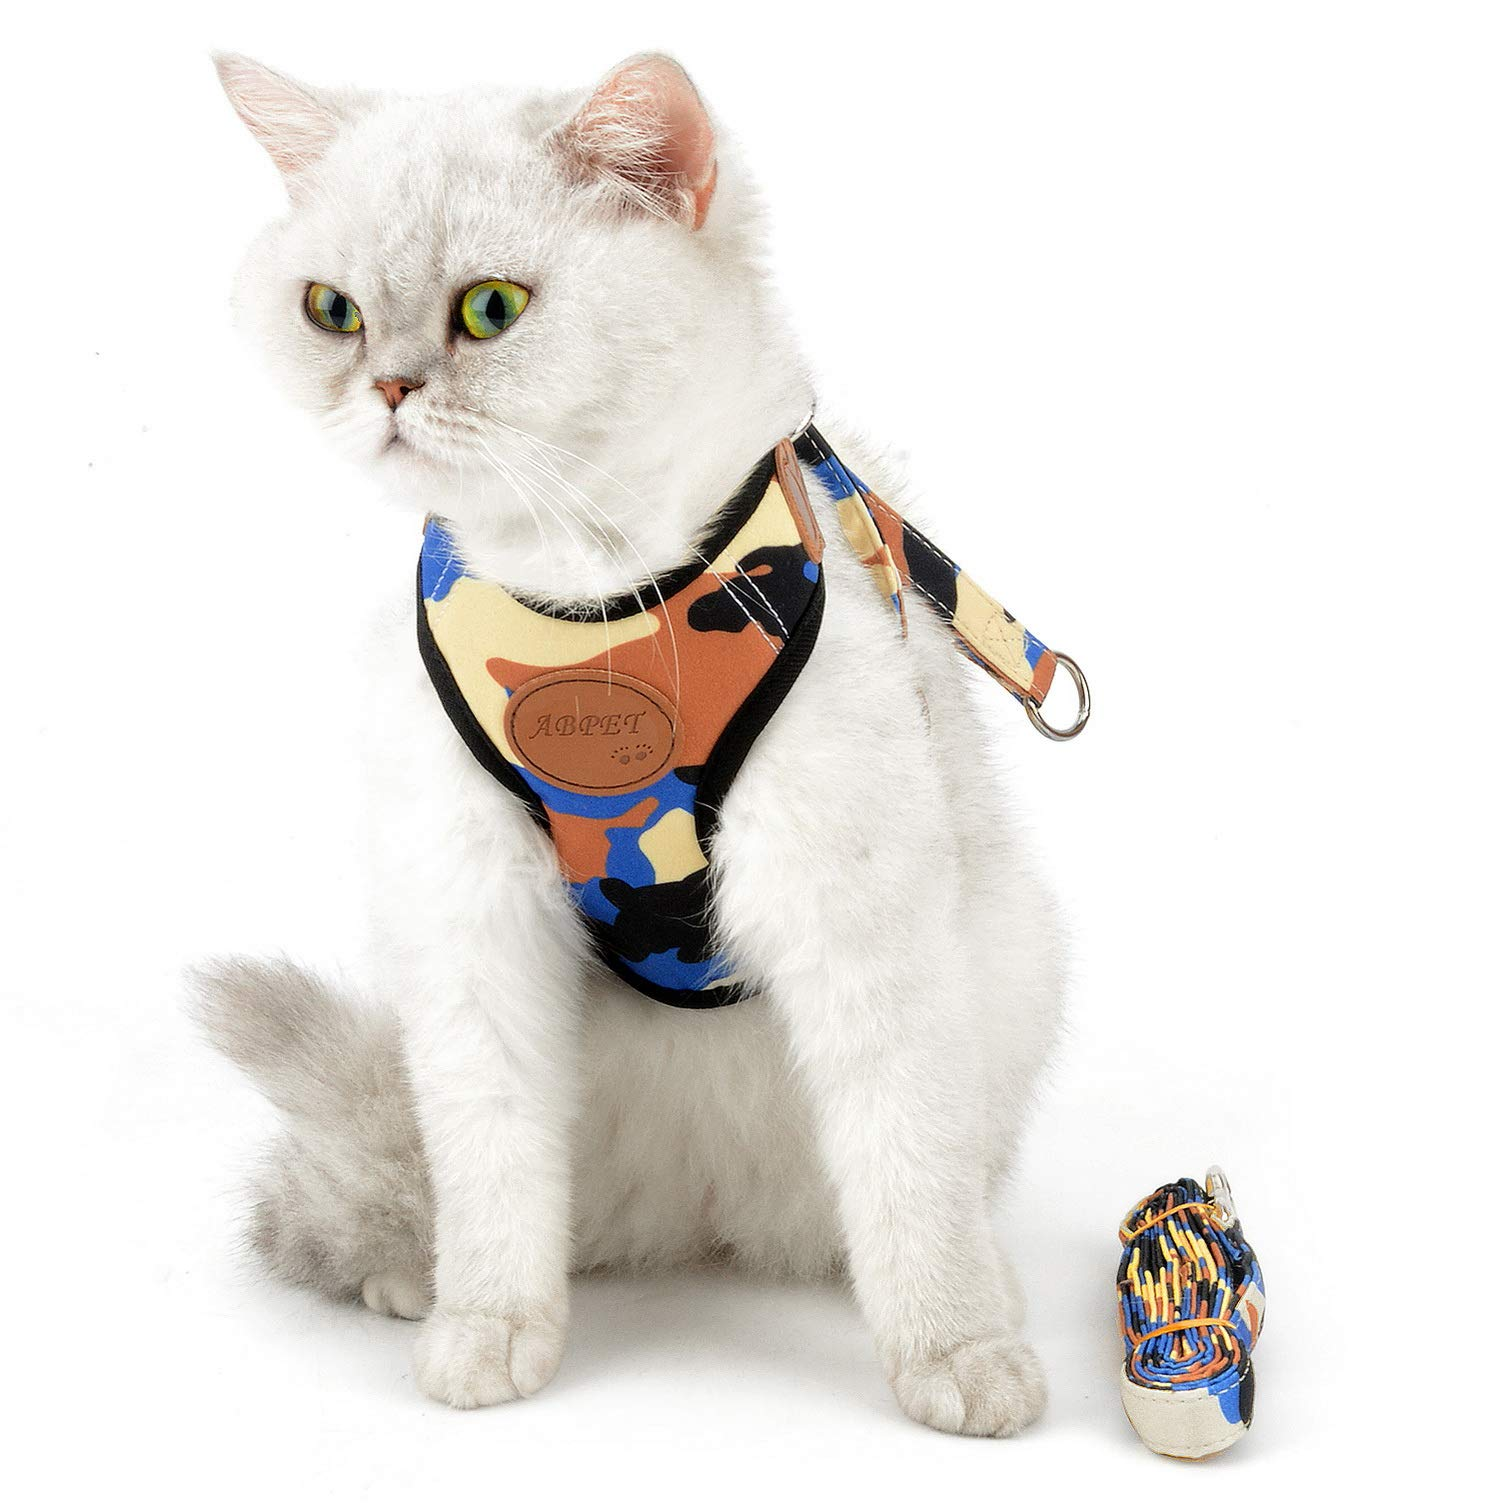 SMALLLEE_LUCKY_STORE Blue Yellow Black Camo Cat Harness and Leash Set Escape Proof for Walking Boy Soft Mesh Padded Adjustable No Pull Small Puppies Kitten Dog Haness Vest Easy On Outside,Large